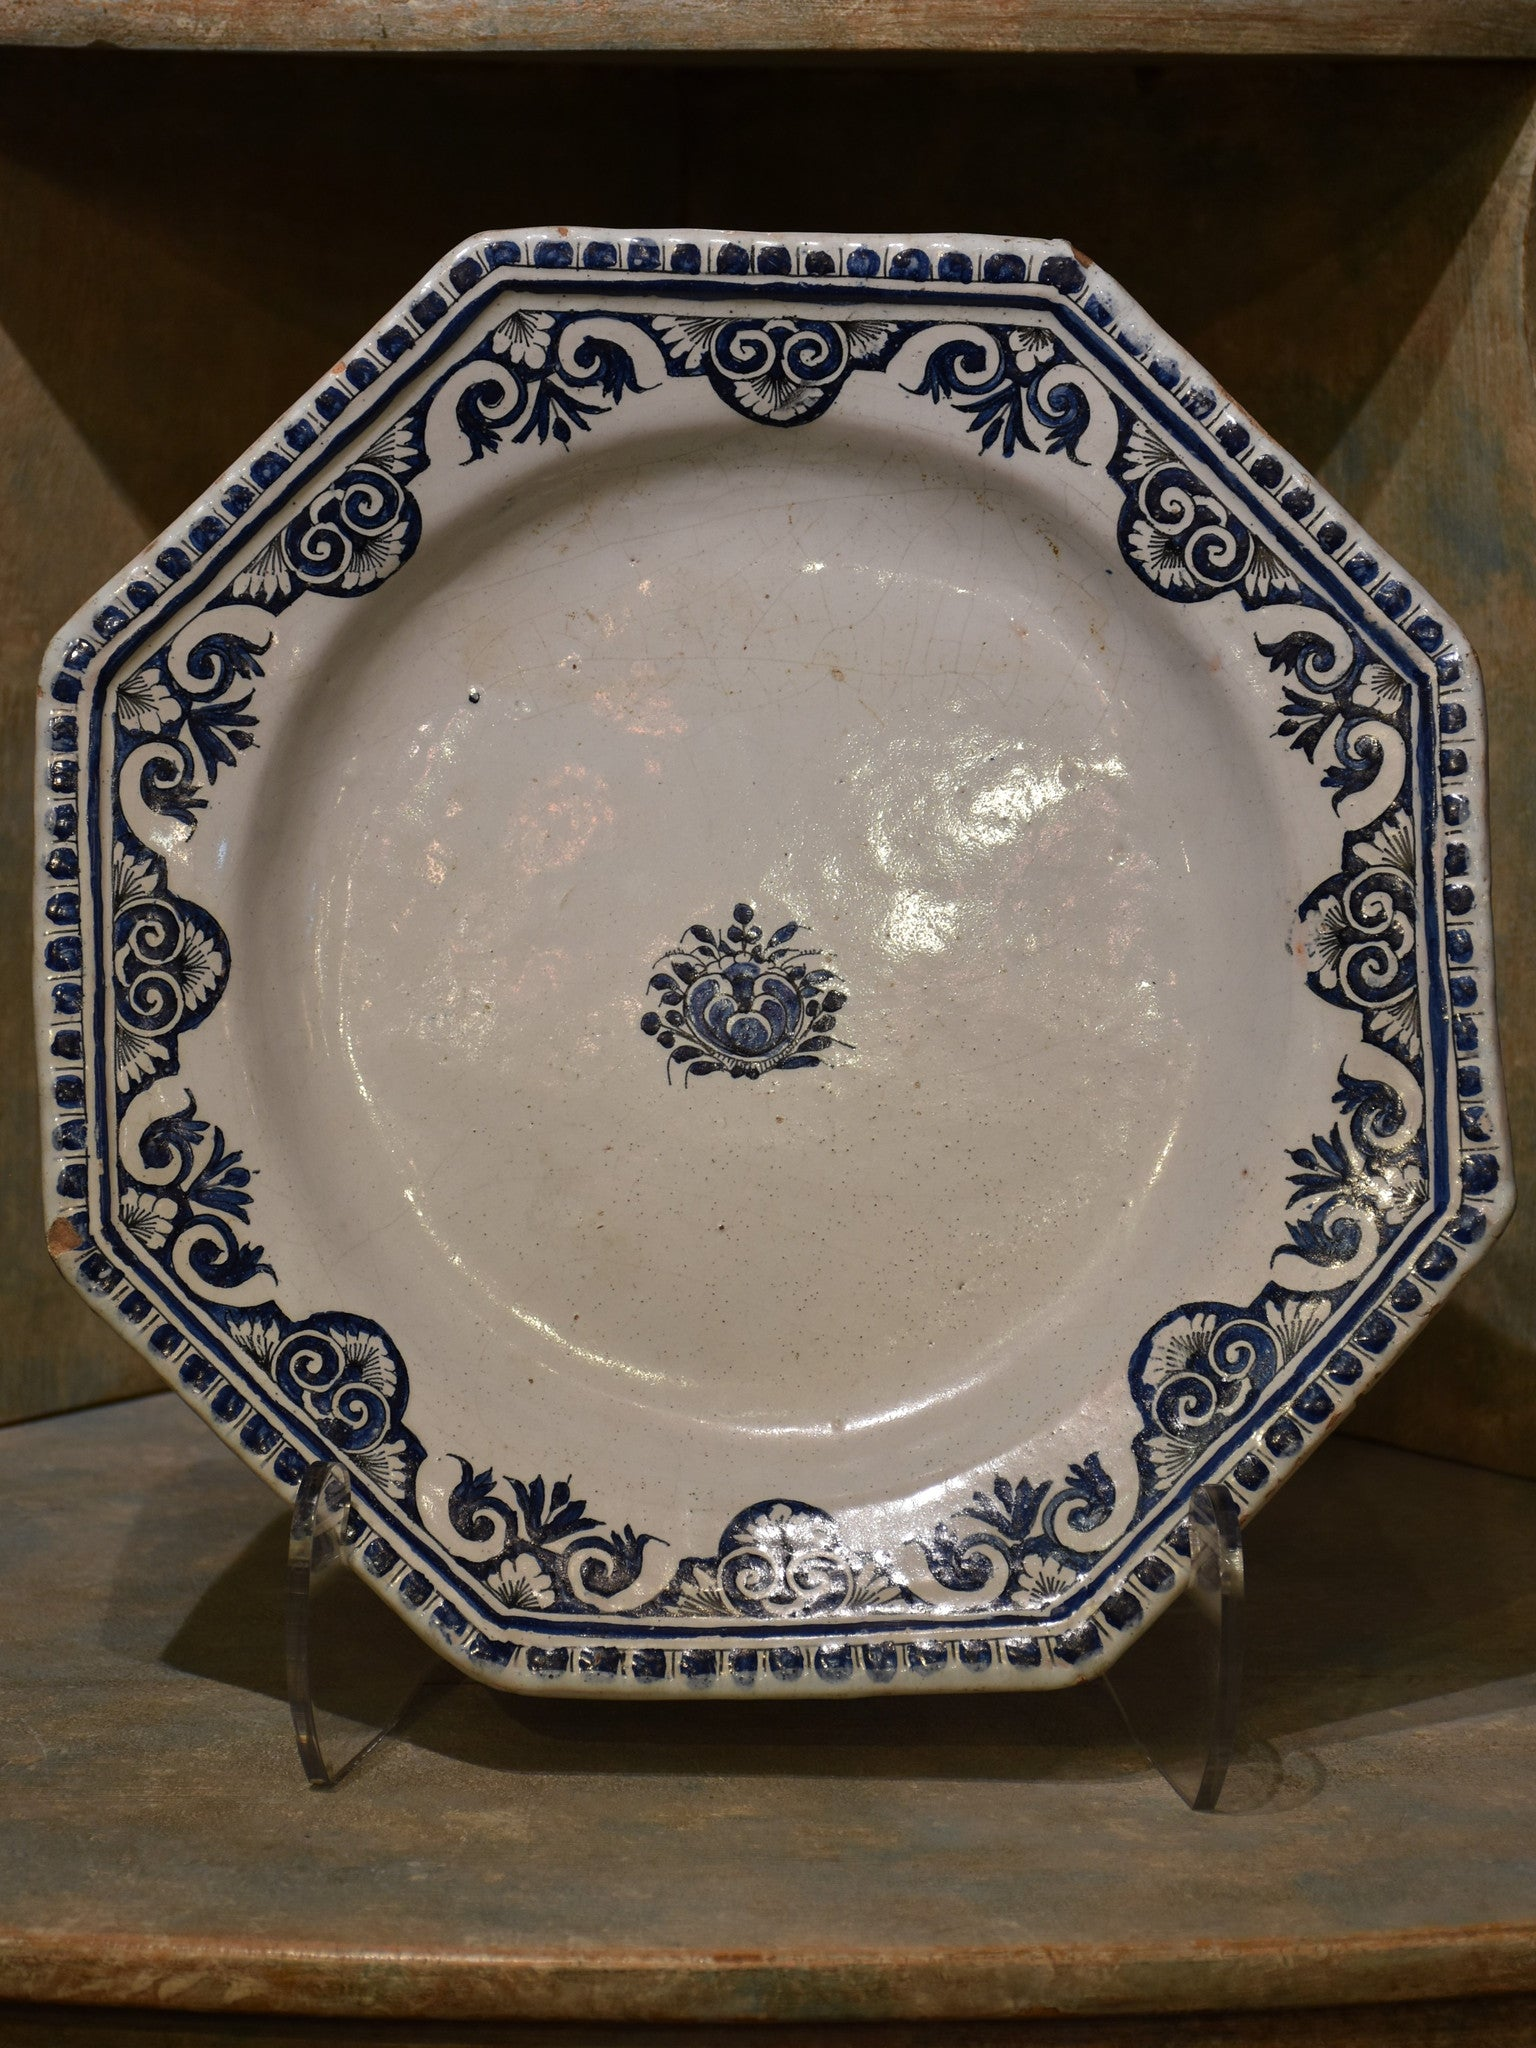 Blue and white early 19th century octagonal earthenware plate – Rouen Faience